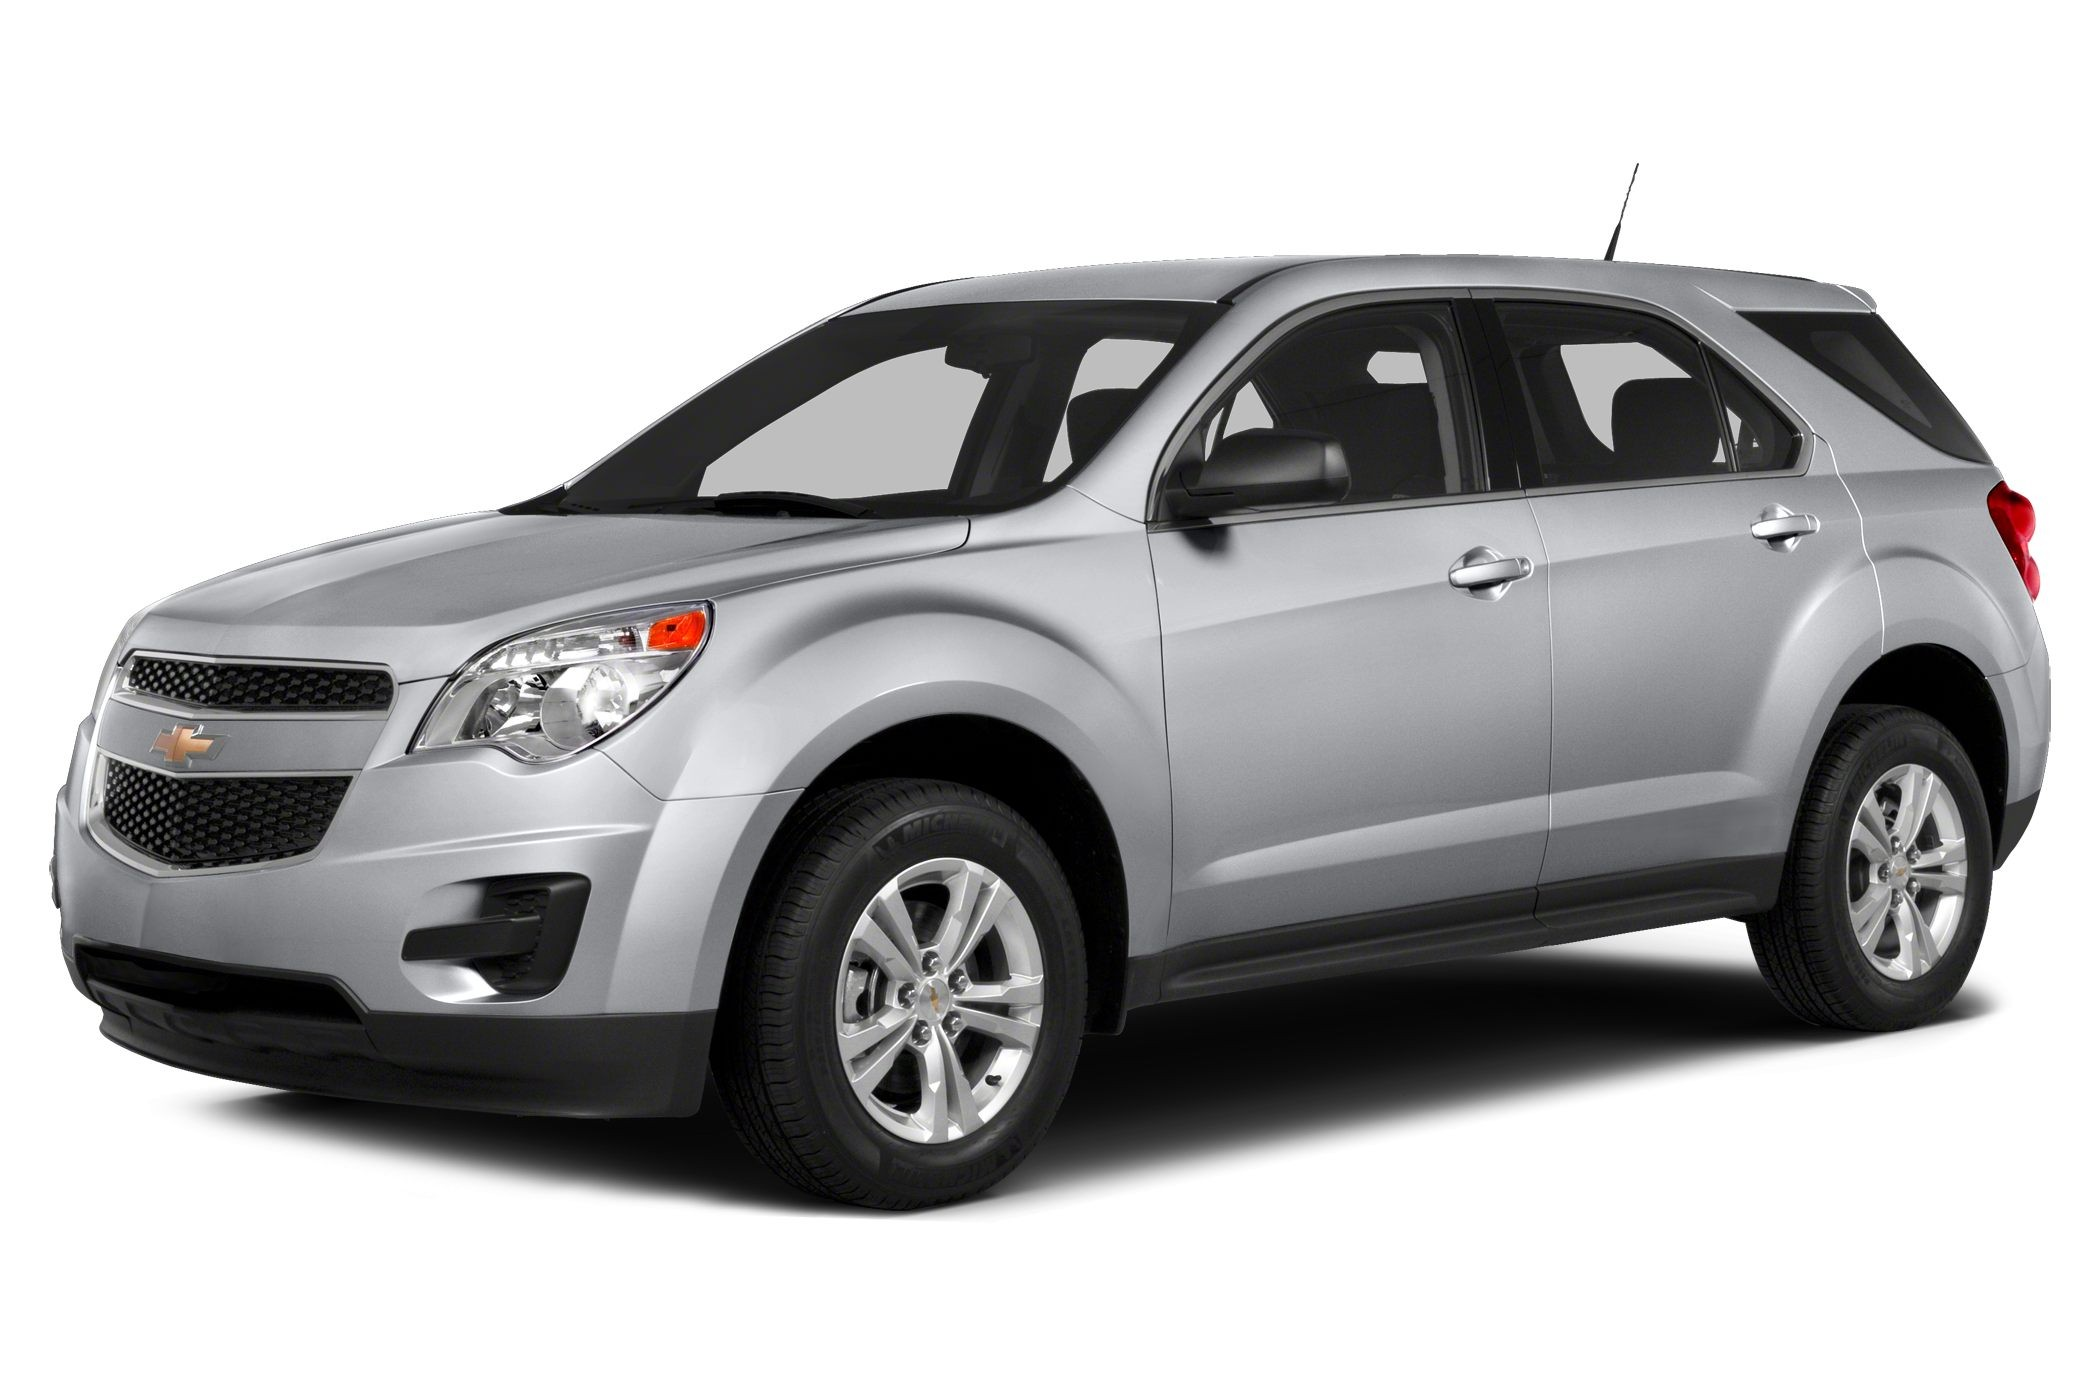 2005 Chevy Equinox Engine Diagram 2013 Chevrolet Equinox Specs and Prices Of 2005 Chevy Equinox Engine Diagram